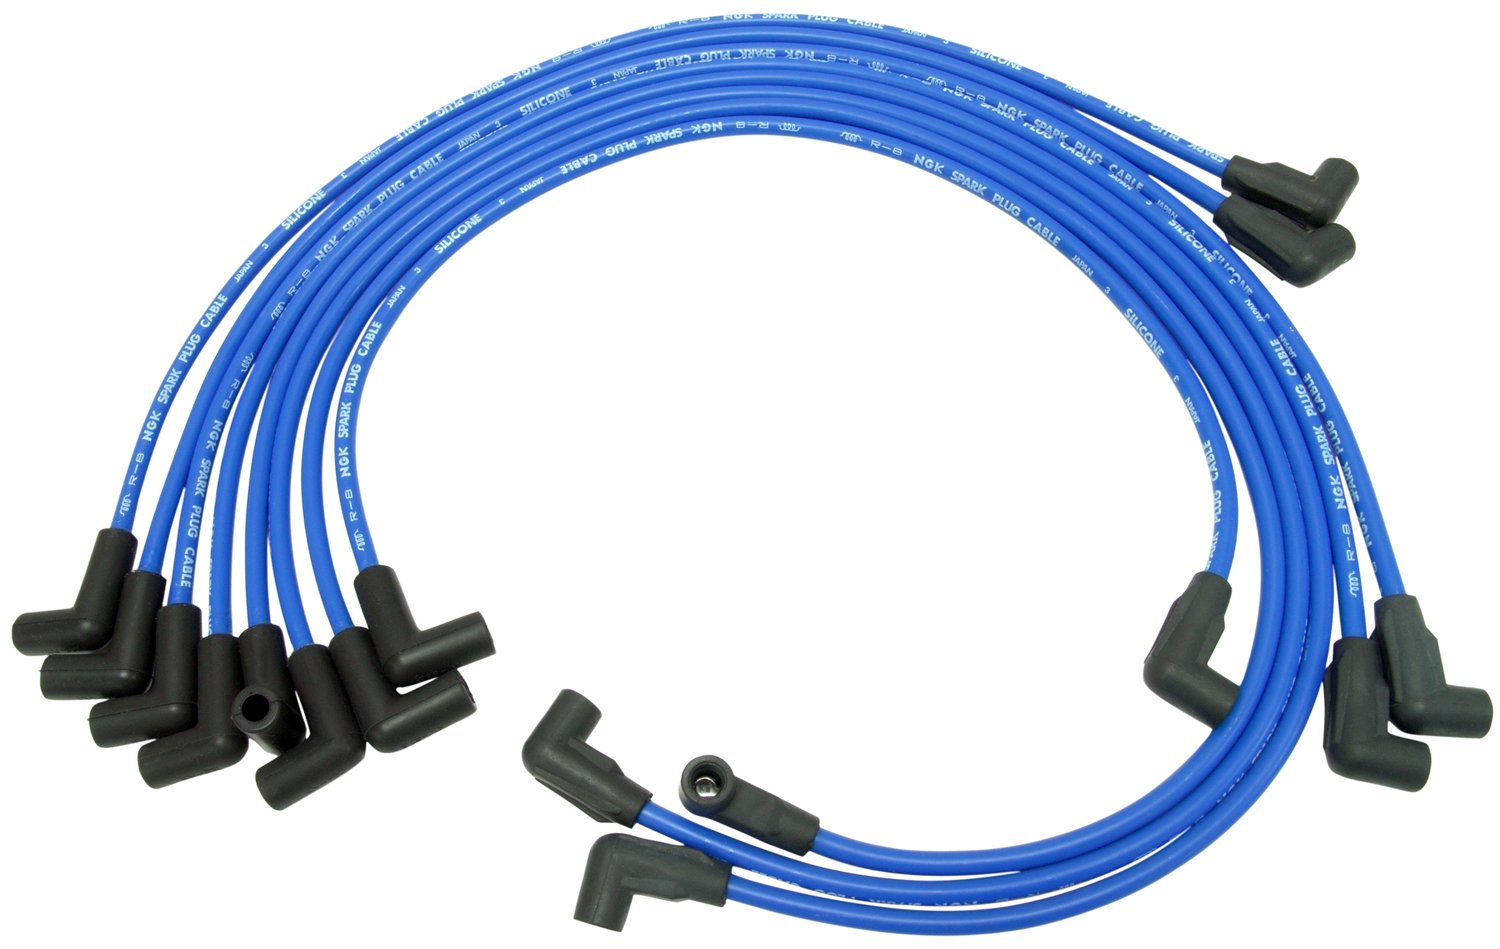 NGK RC-GMZ037 Spark Plug Wire Set (51241), 1 Pack